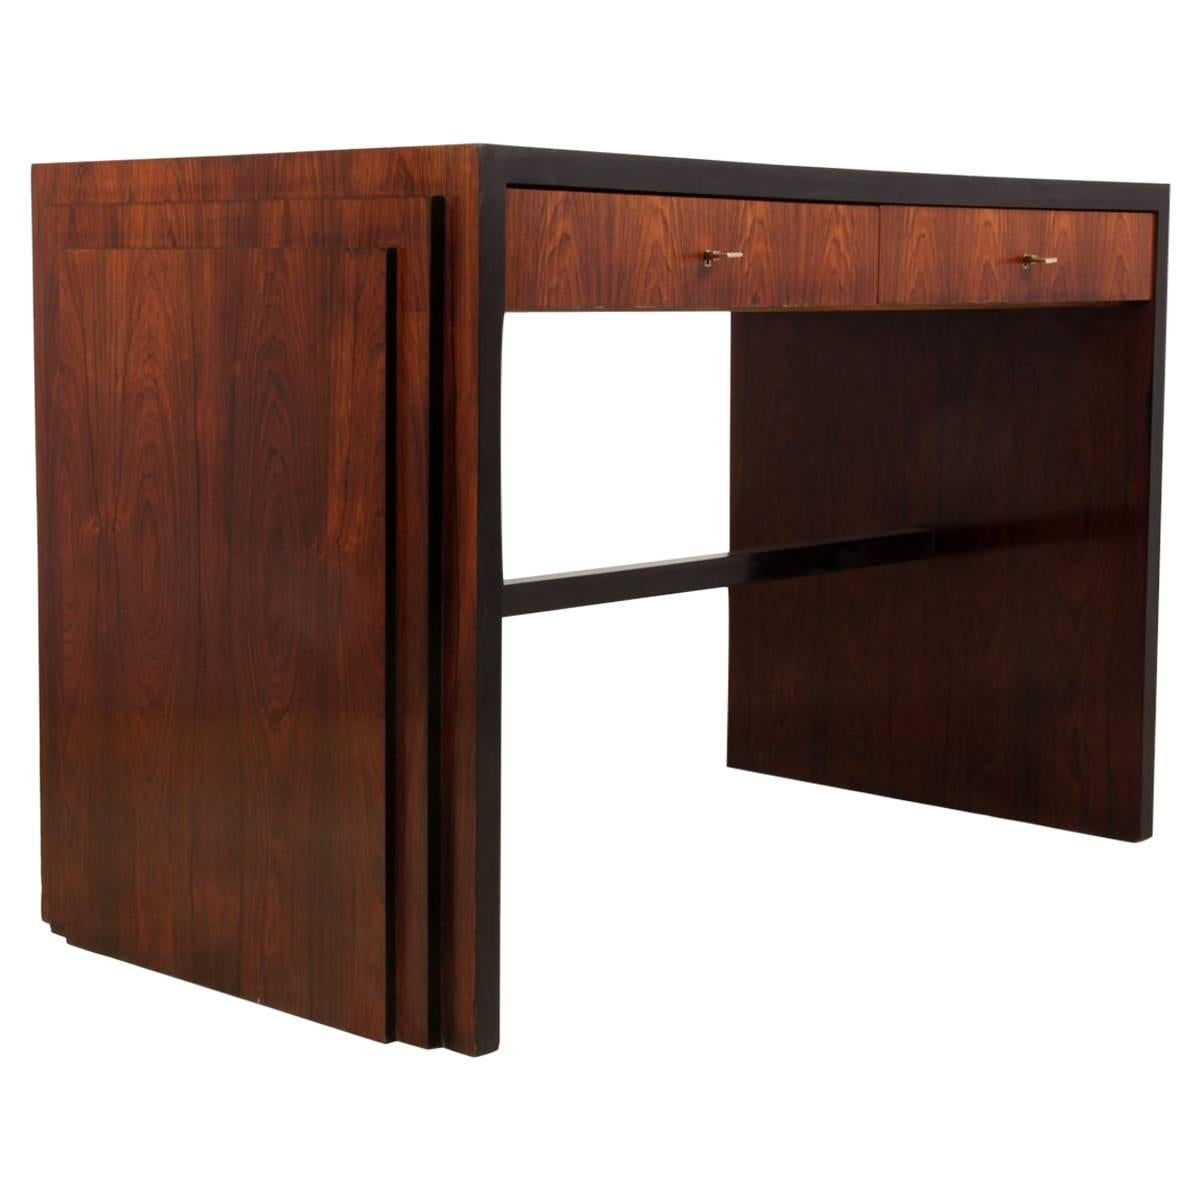 art deco desk french 1920 at 1stdibs rh 1stdibs com art deco desk set art deco desktop wallpaper